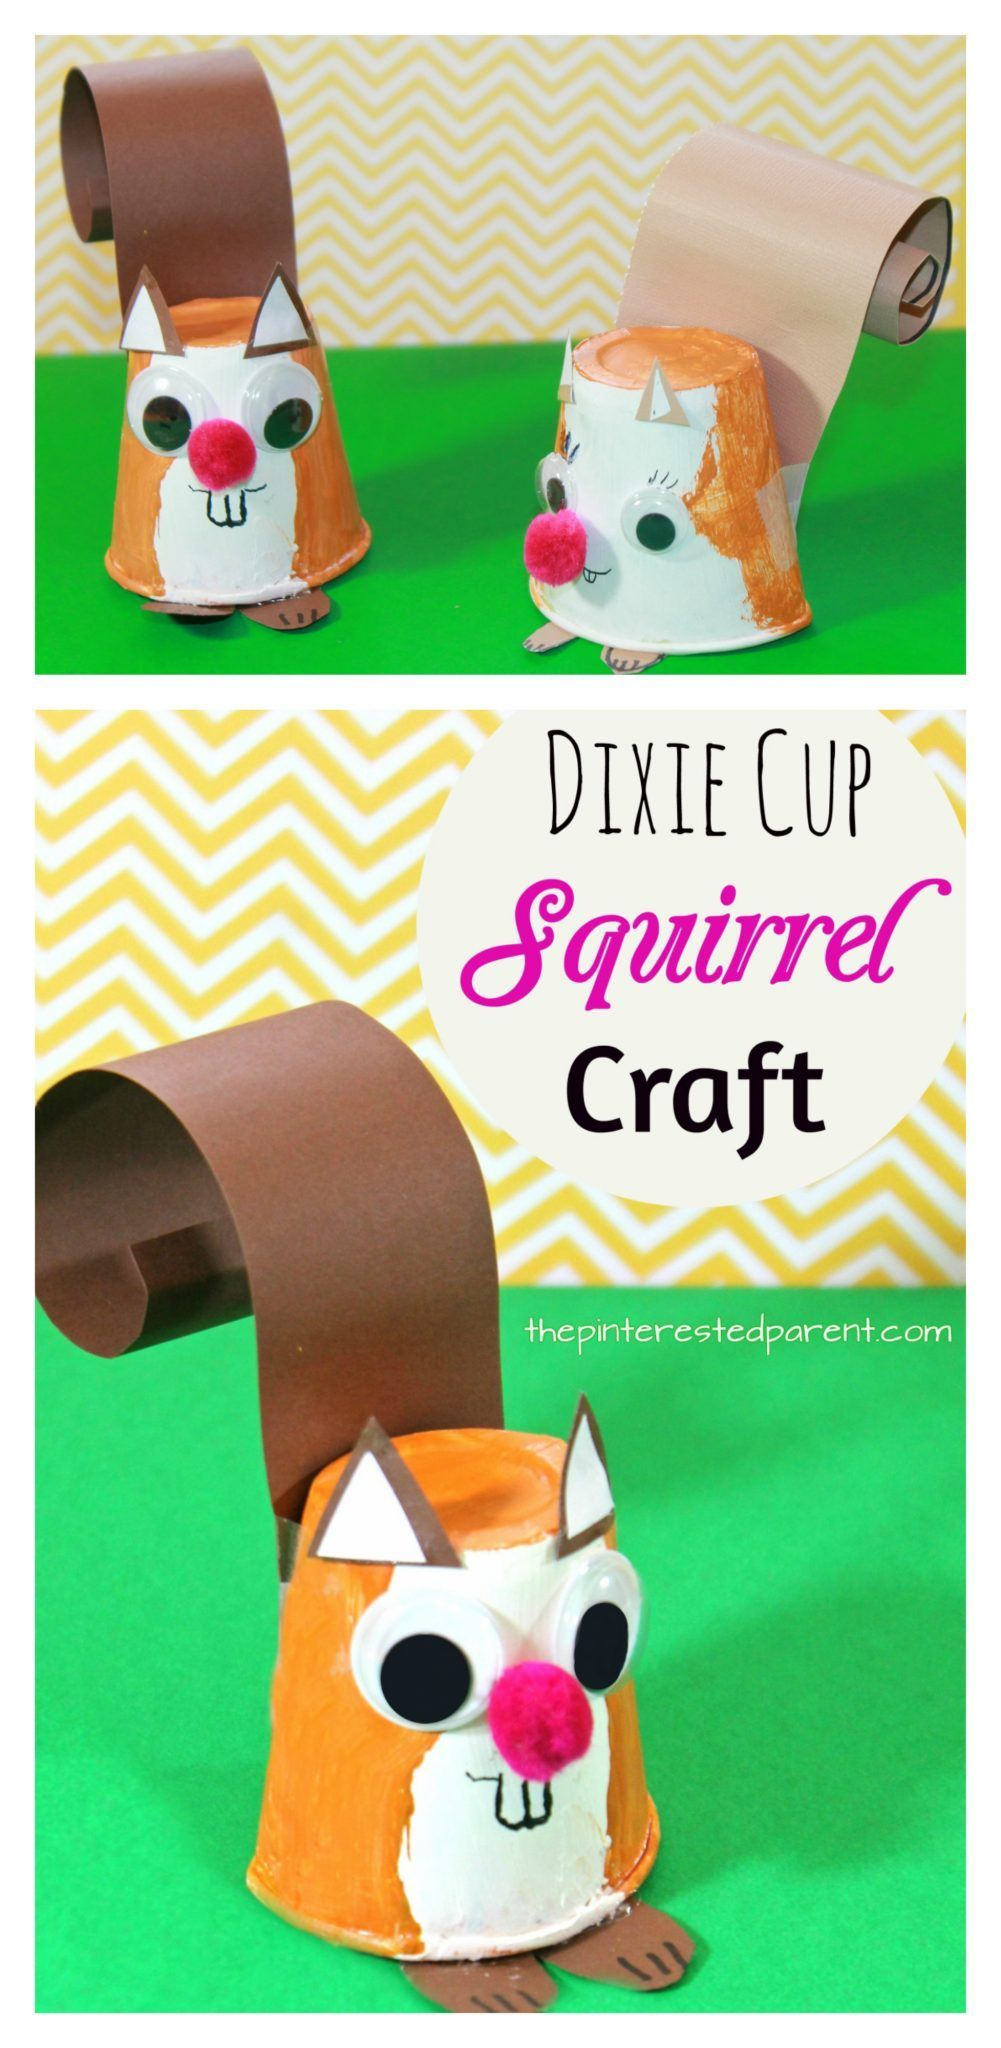 Dixie Cup Squirrel Craft - kid's arts and crafts for autumn / fall - paper animals